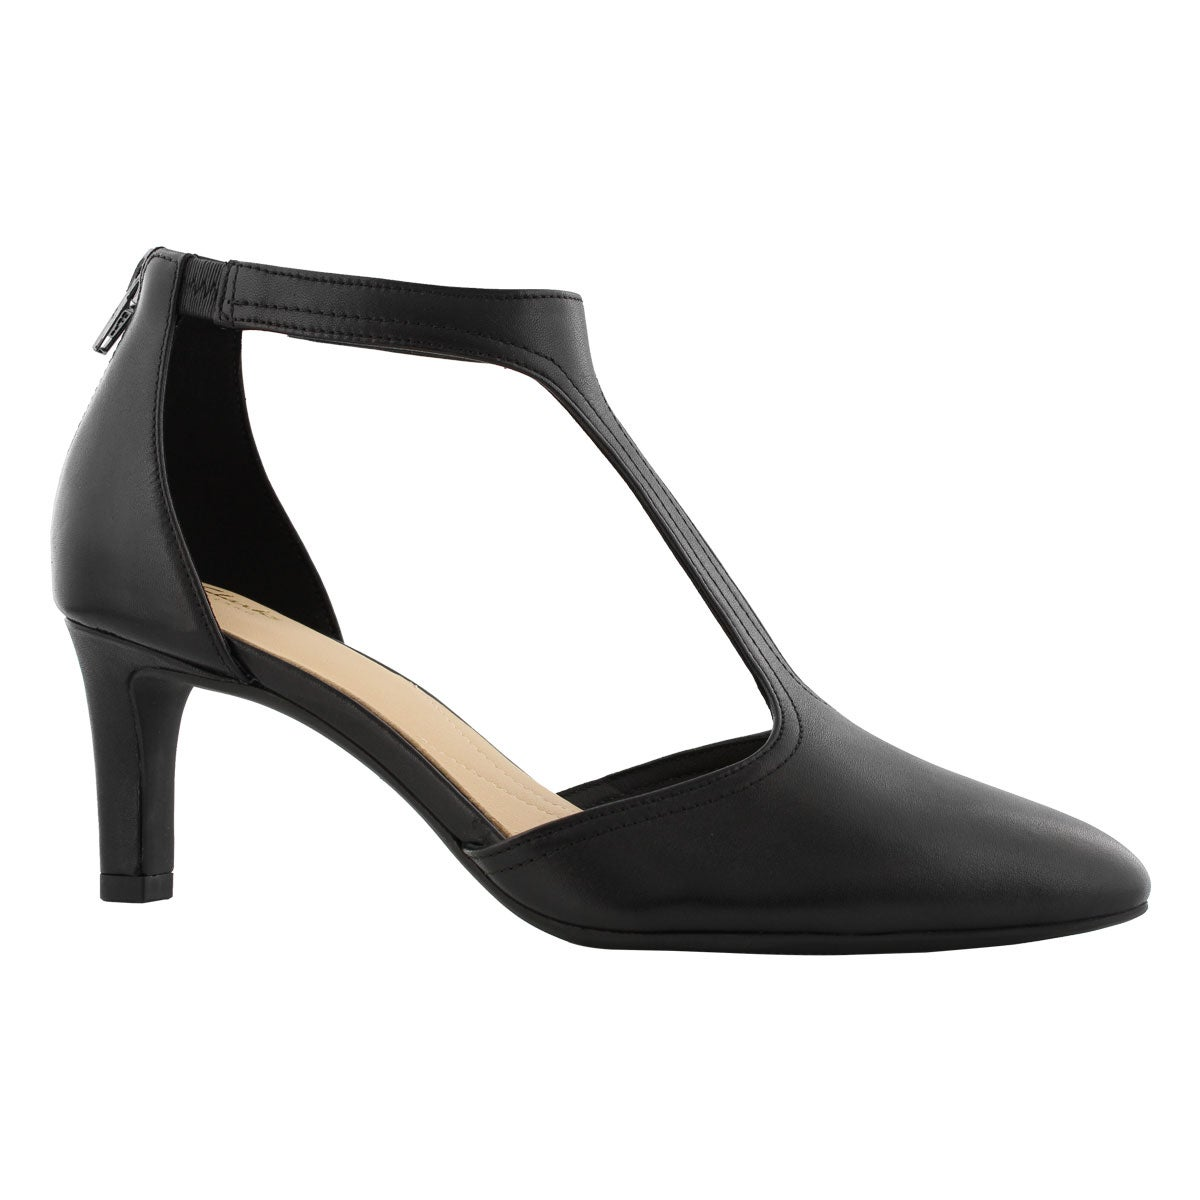 Lds Calla Lily black t-strap heel